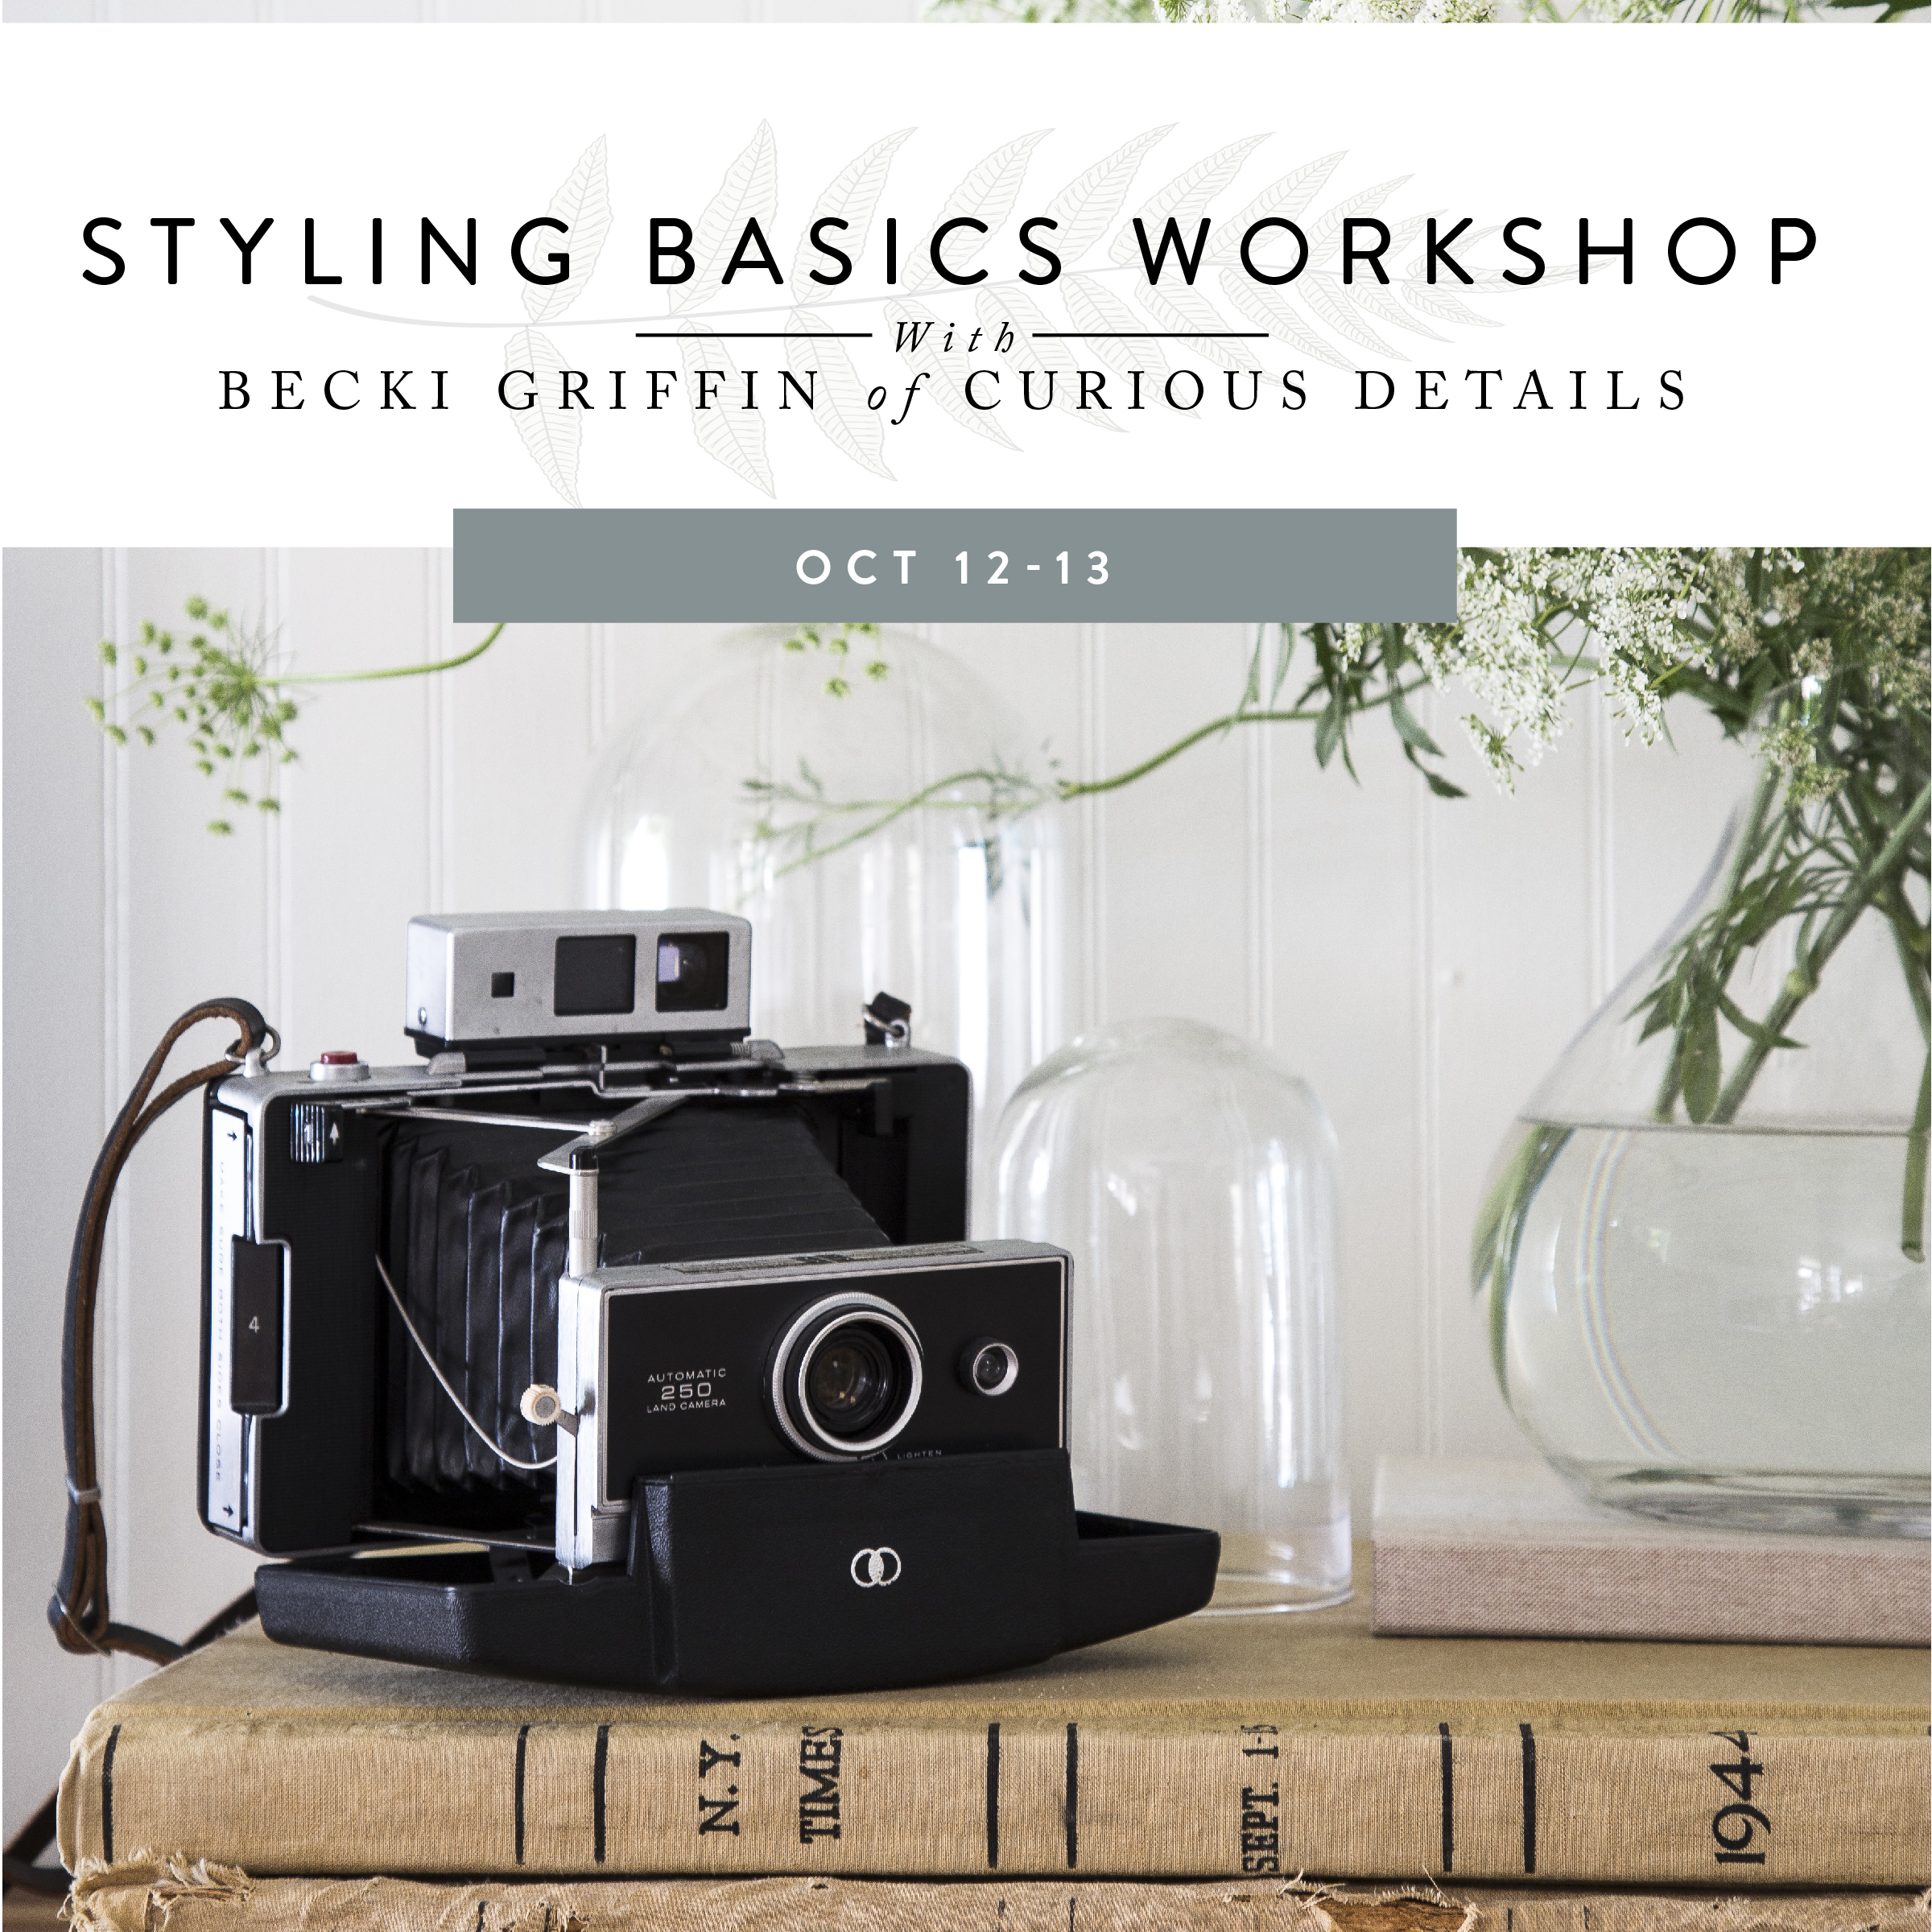 Styling Basics Workshop with Becki Griffin